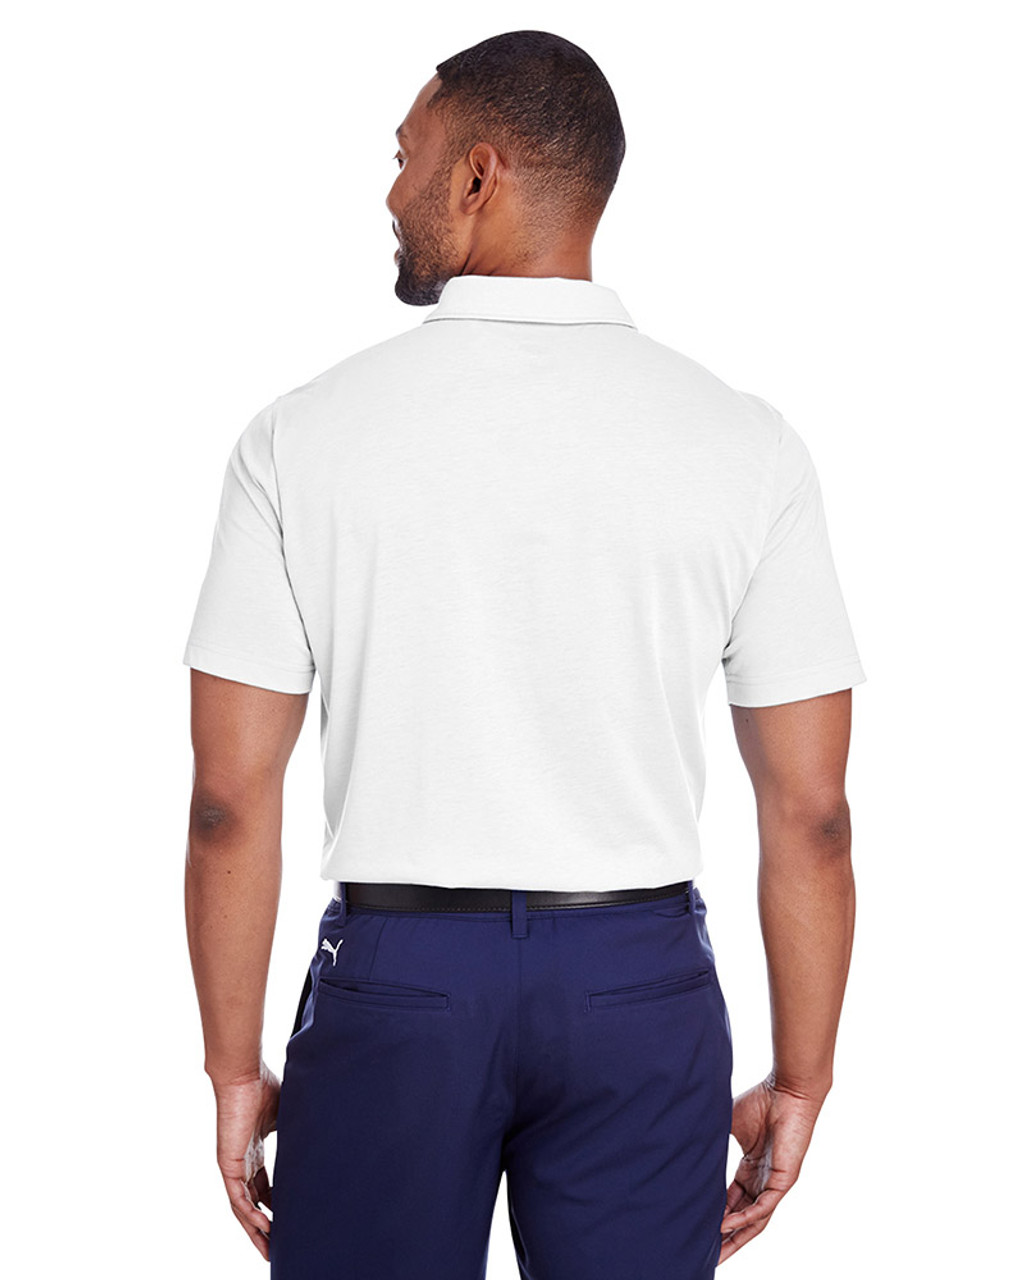 Bright White - back, 596920 Puma Golf Men's Fusion Polo | Blankclothing.ca